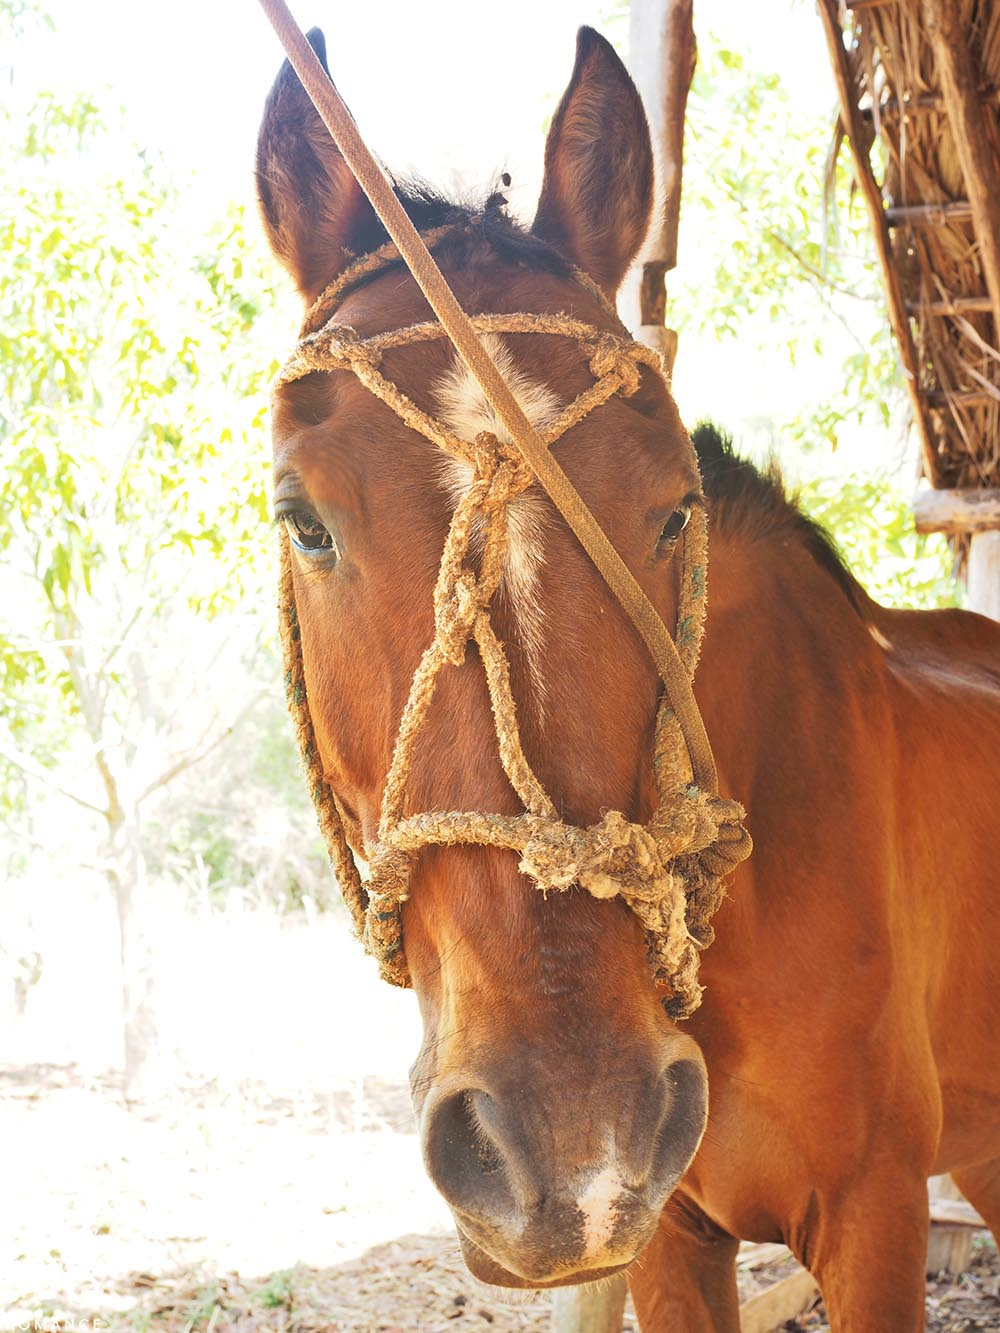 Honeymoon itinerary Cuba - Vinales horse riding